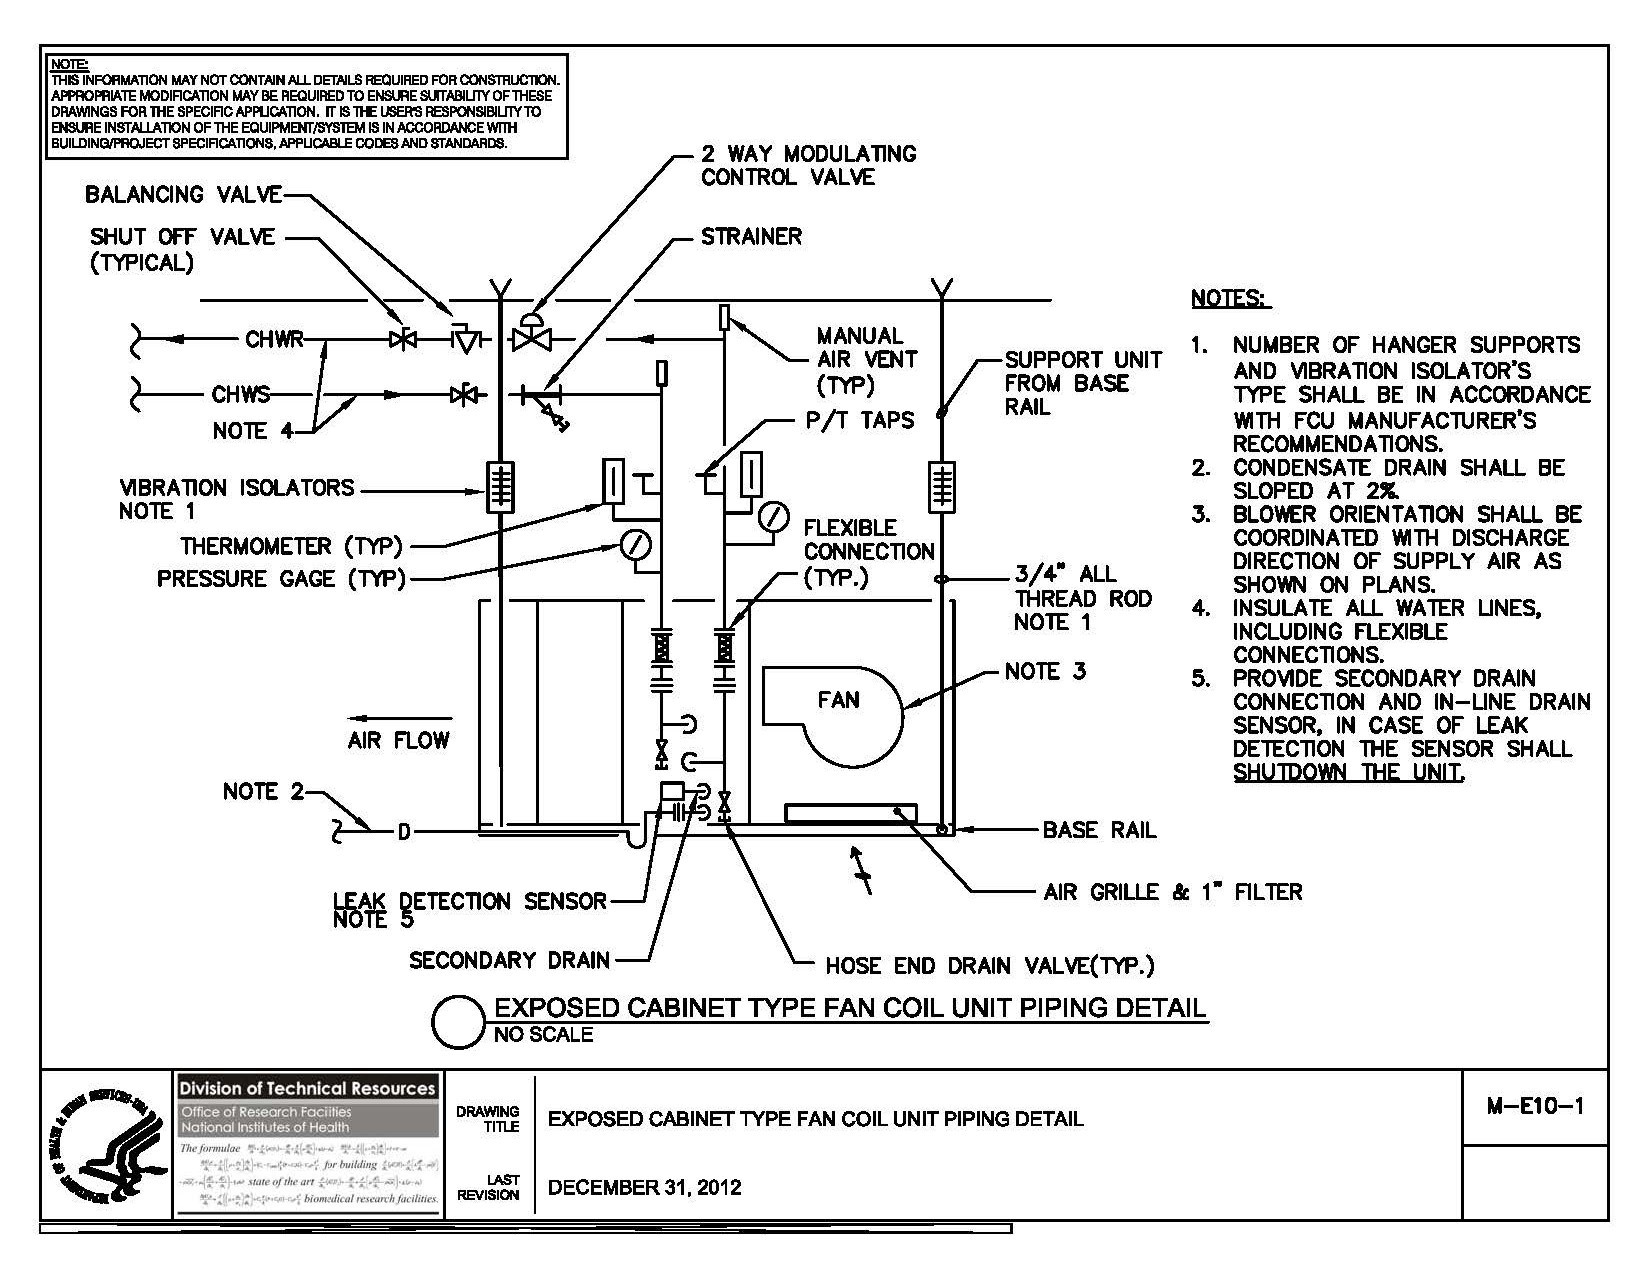 omron g7l 2a tubj cb wiring diagram Download-Omron G7l 2a Tubj Cb Wiring Diagram List Fire Pump Piping Diagram 18-t